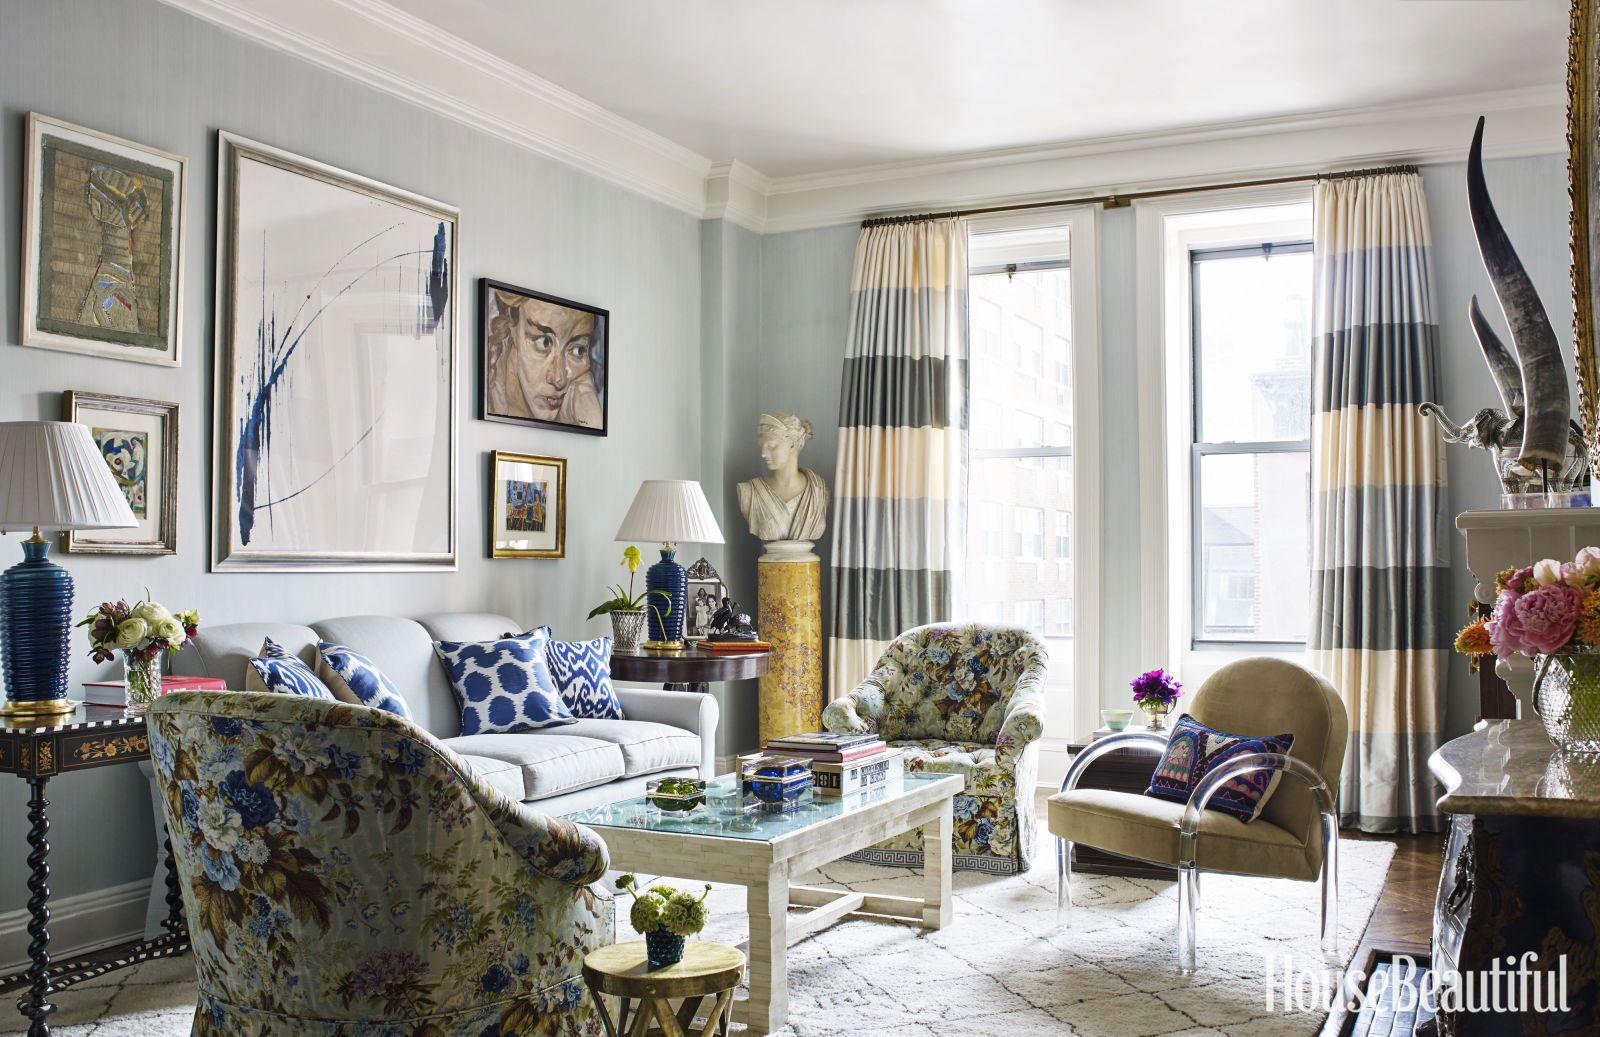 cece barfield hb | home | Pinterest | Living rooms, Soothing colors ...